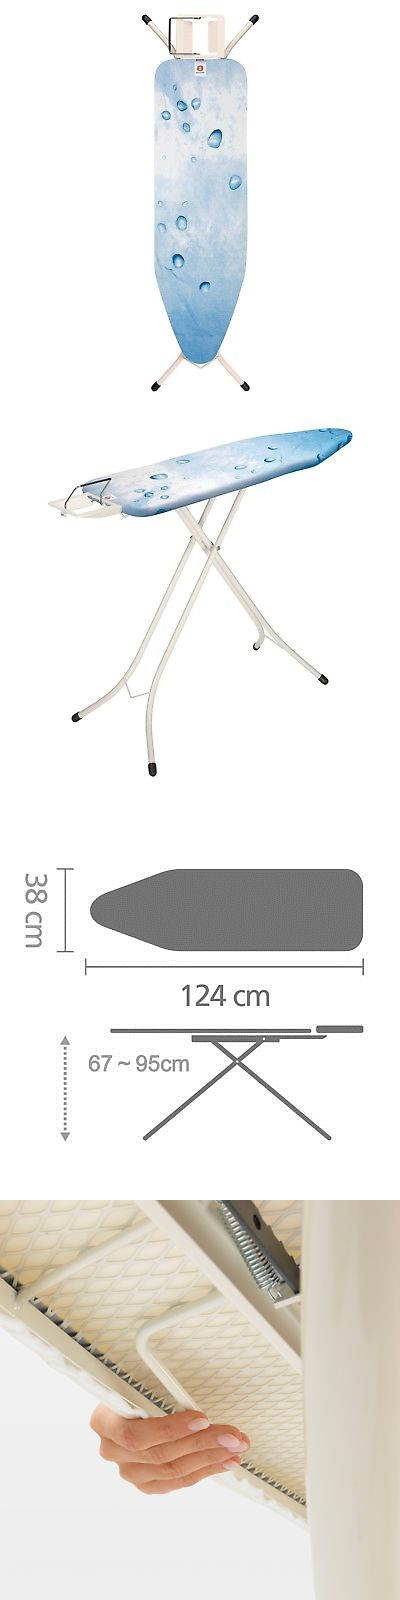 ironing board with steam iron rest size b standard ecru cover